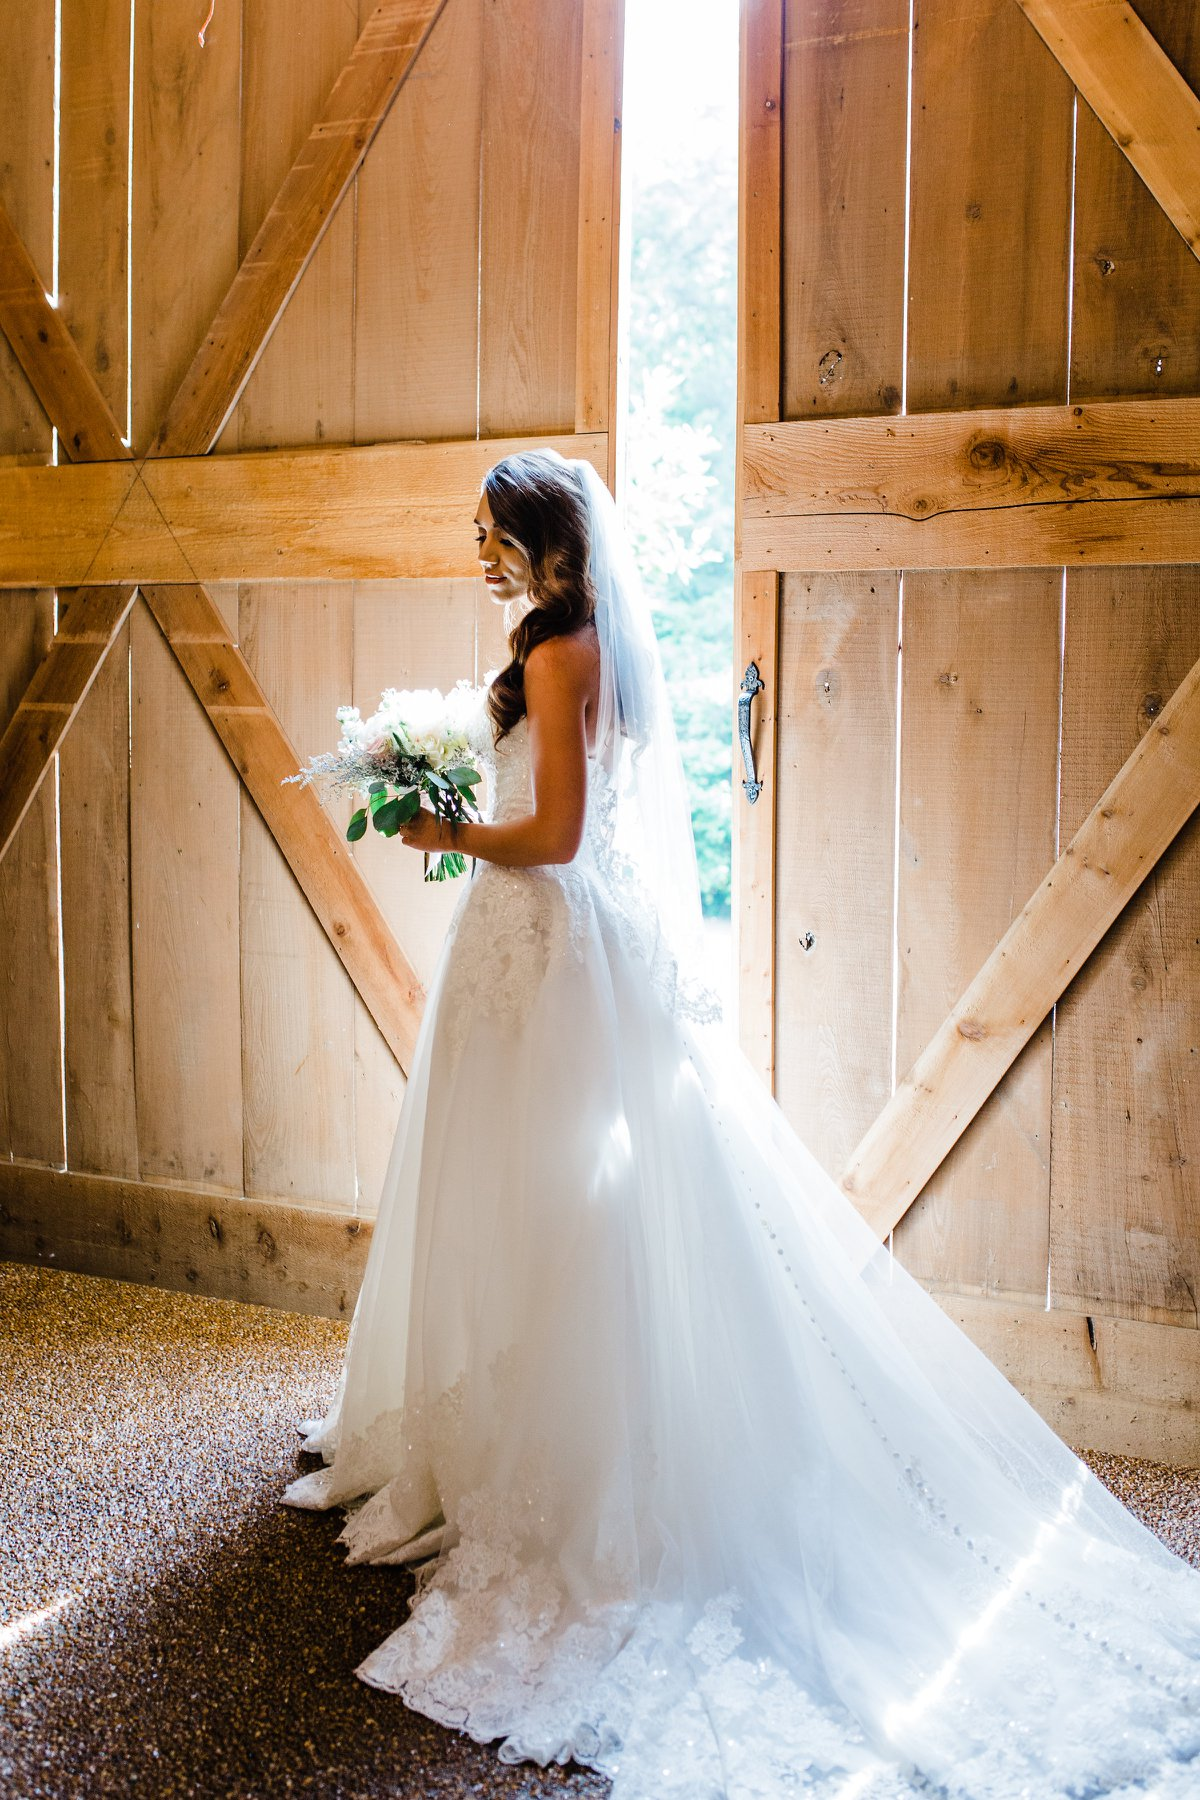 Bridal portrait with doors